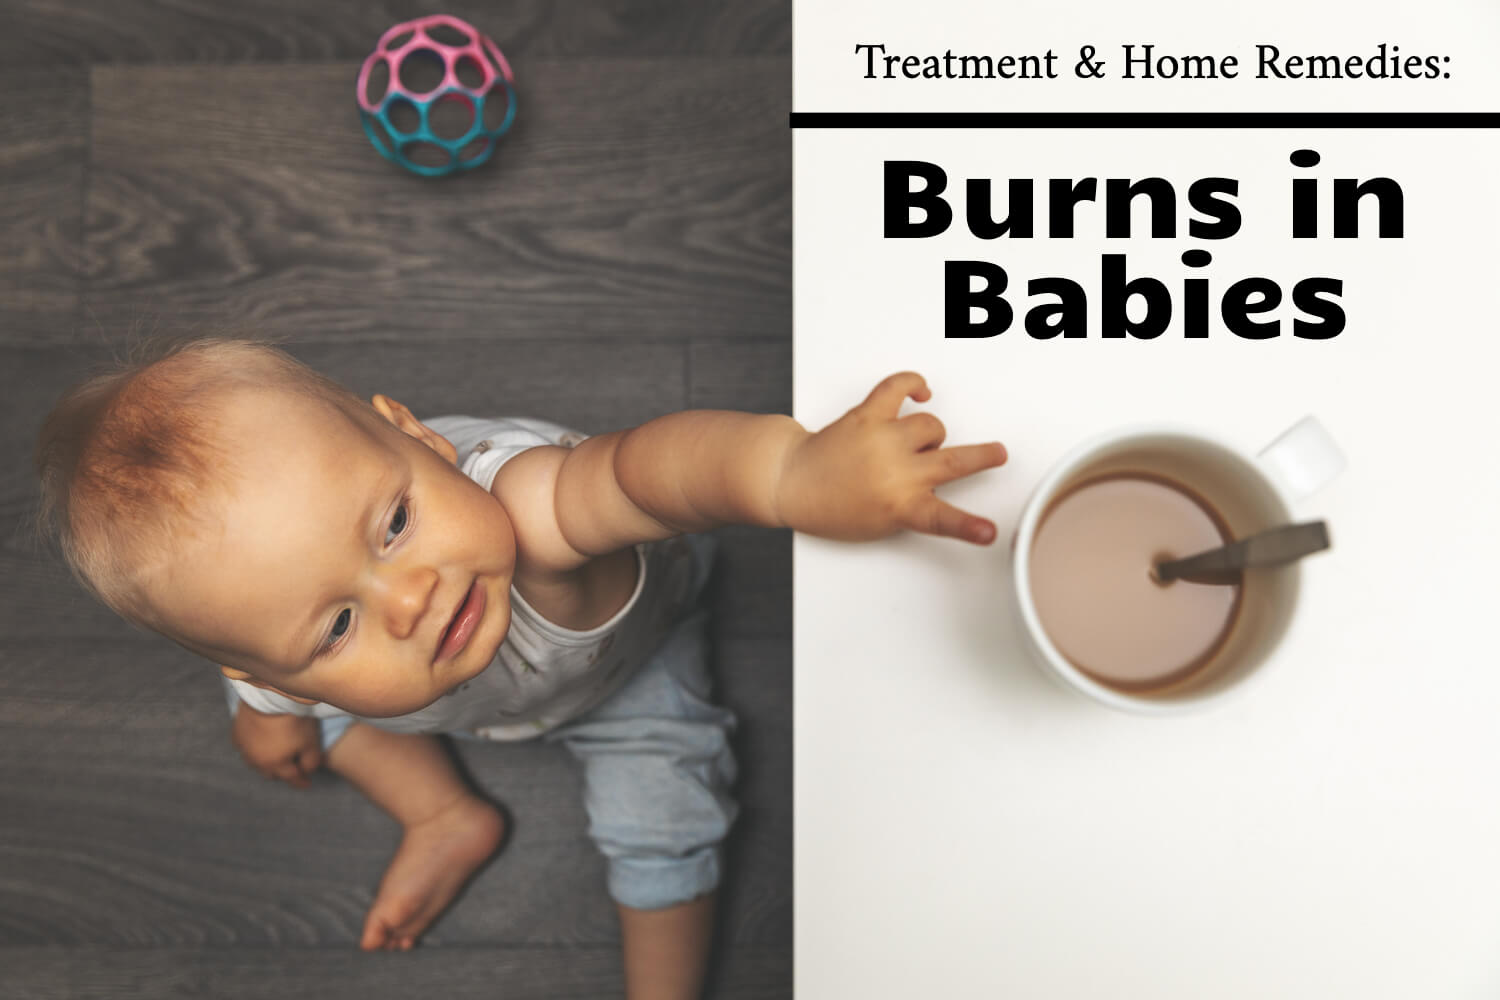 Burns in Babies: Treatment & Home Remedies